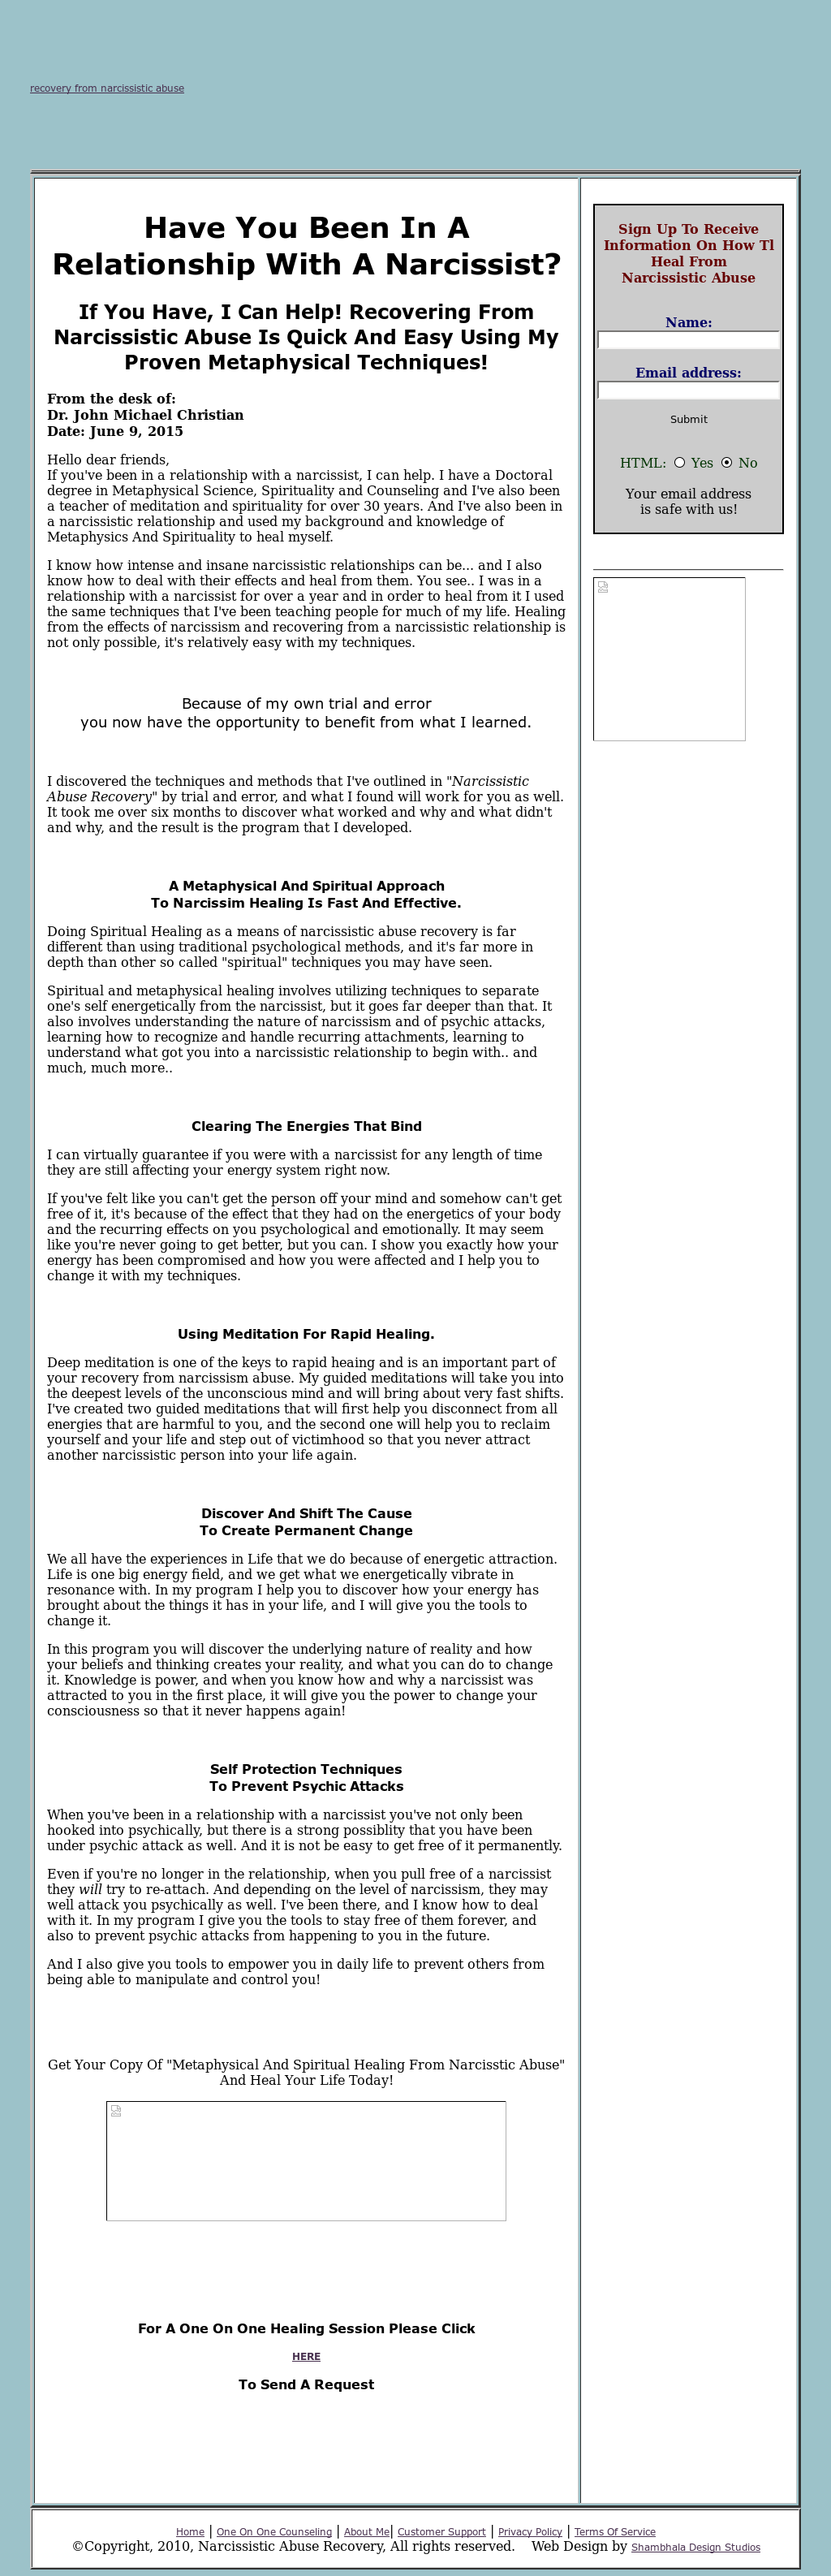 Narcissistic Abuse Recovery Competitors, Revenue and